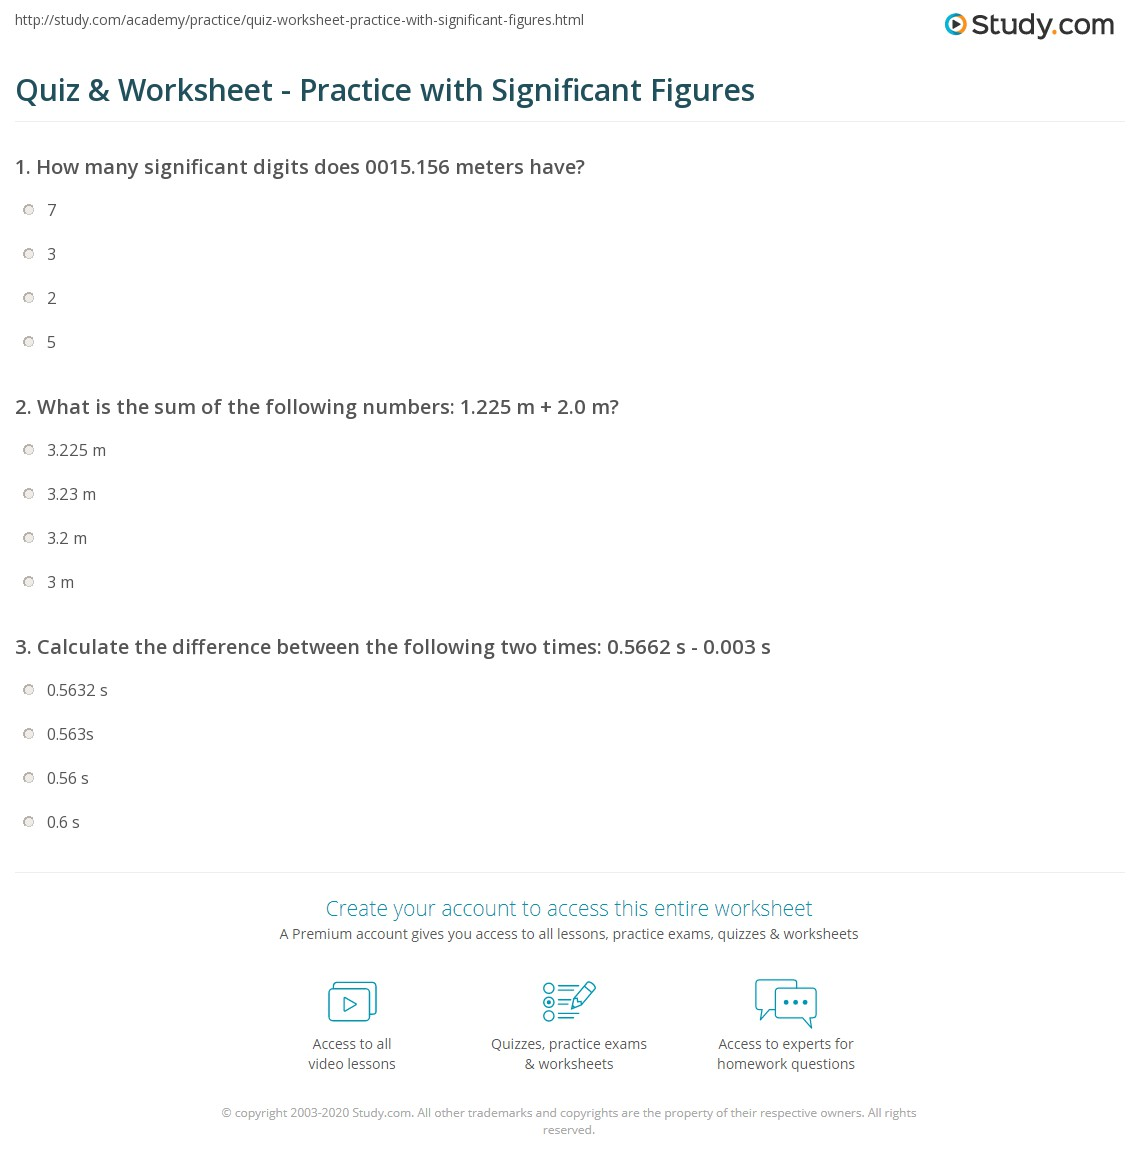 Quiz & Worksheet - Practice with Significant Figures | Study.com